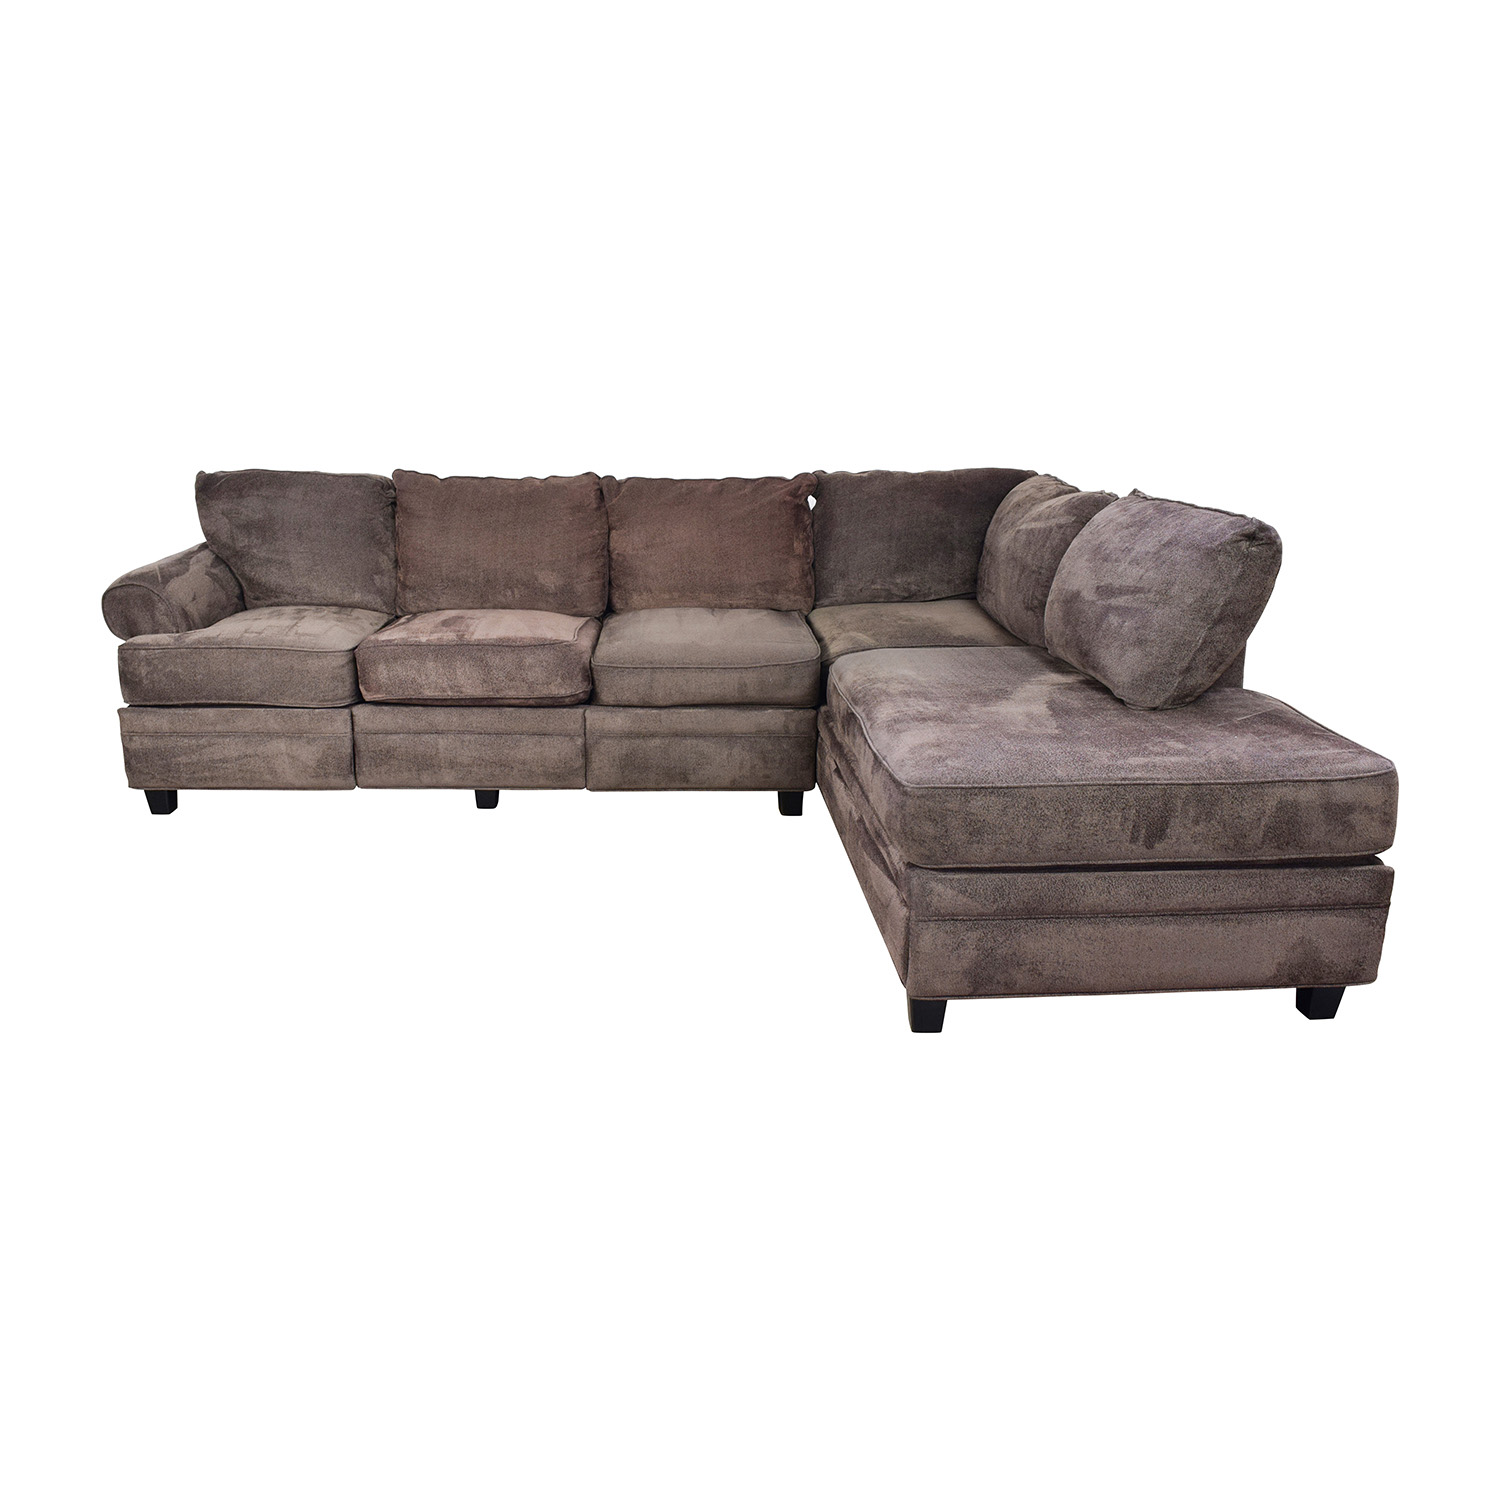 55 Off Bob S Discount Furniture Bob S Furniture Brown Sectional